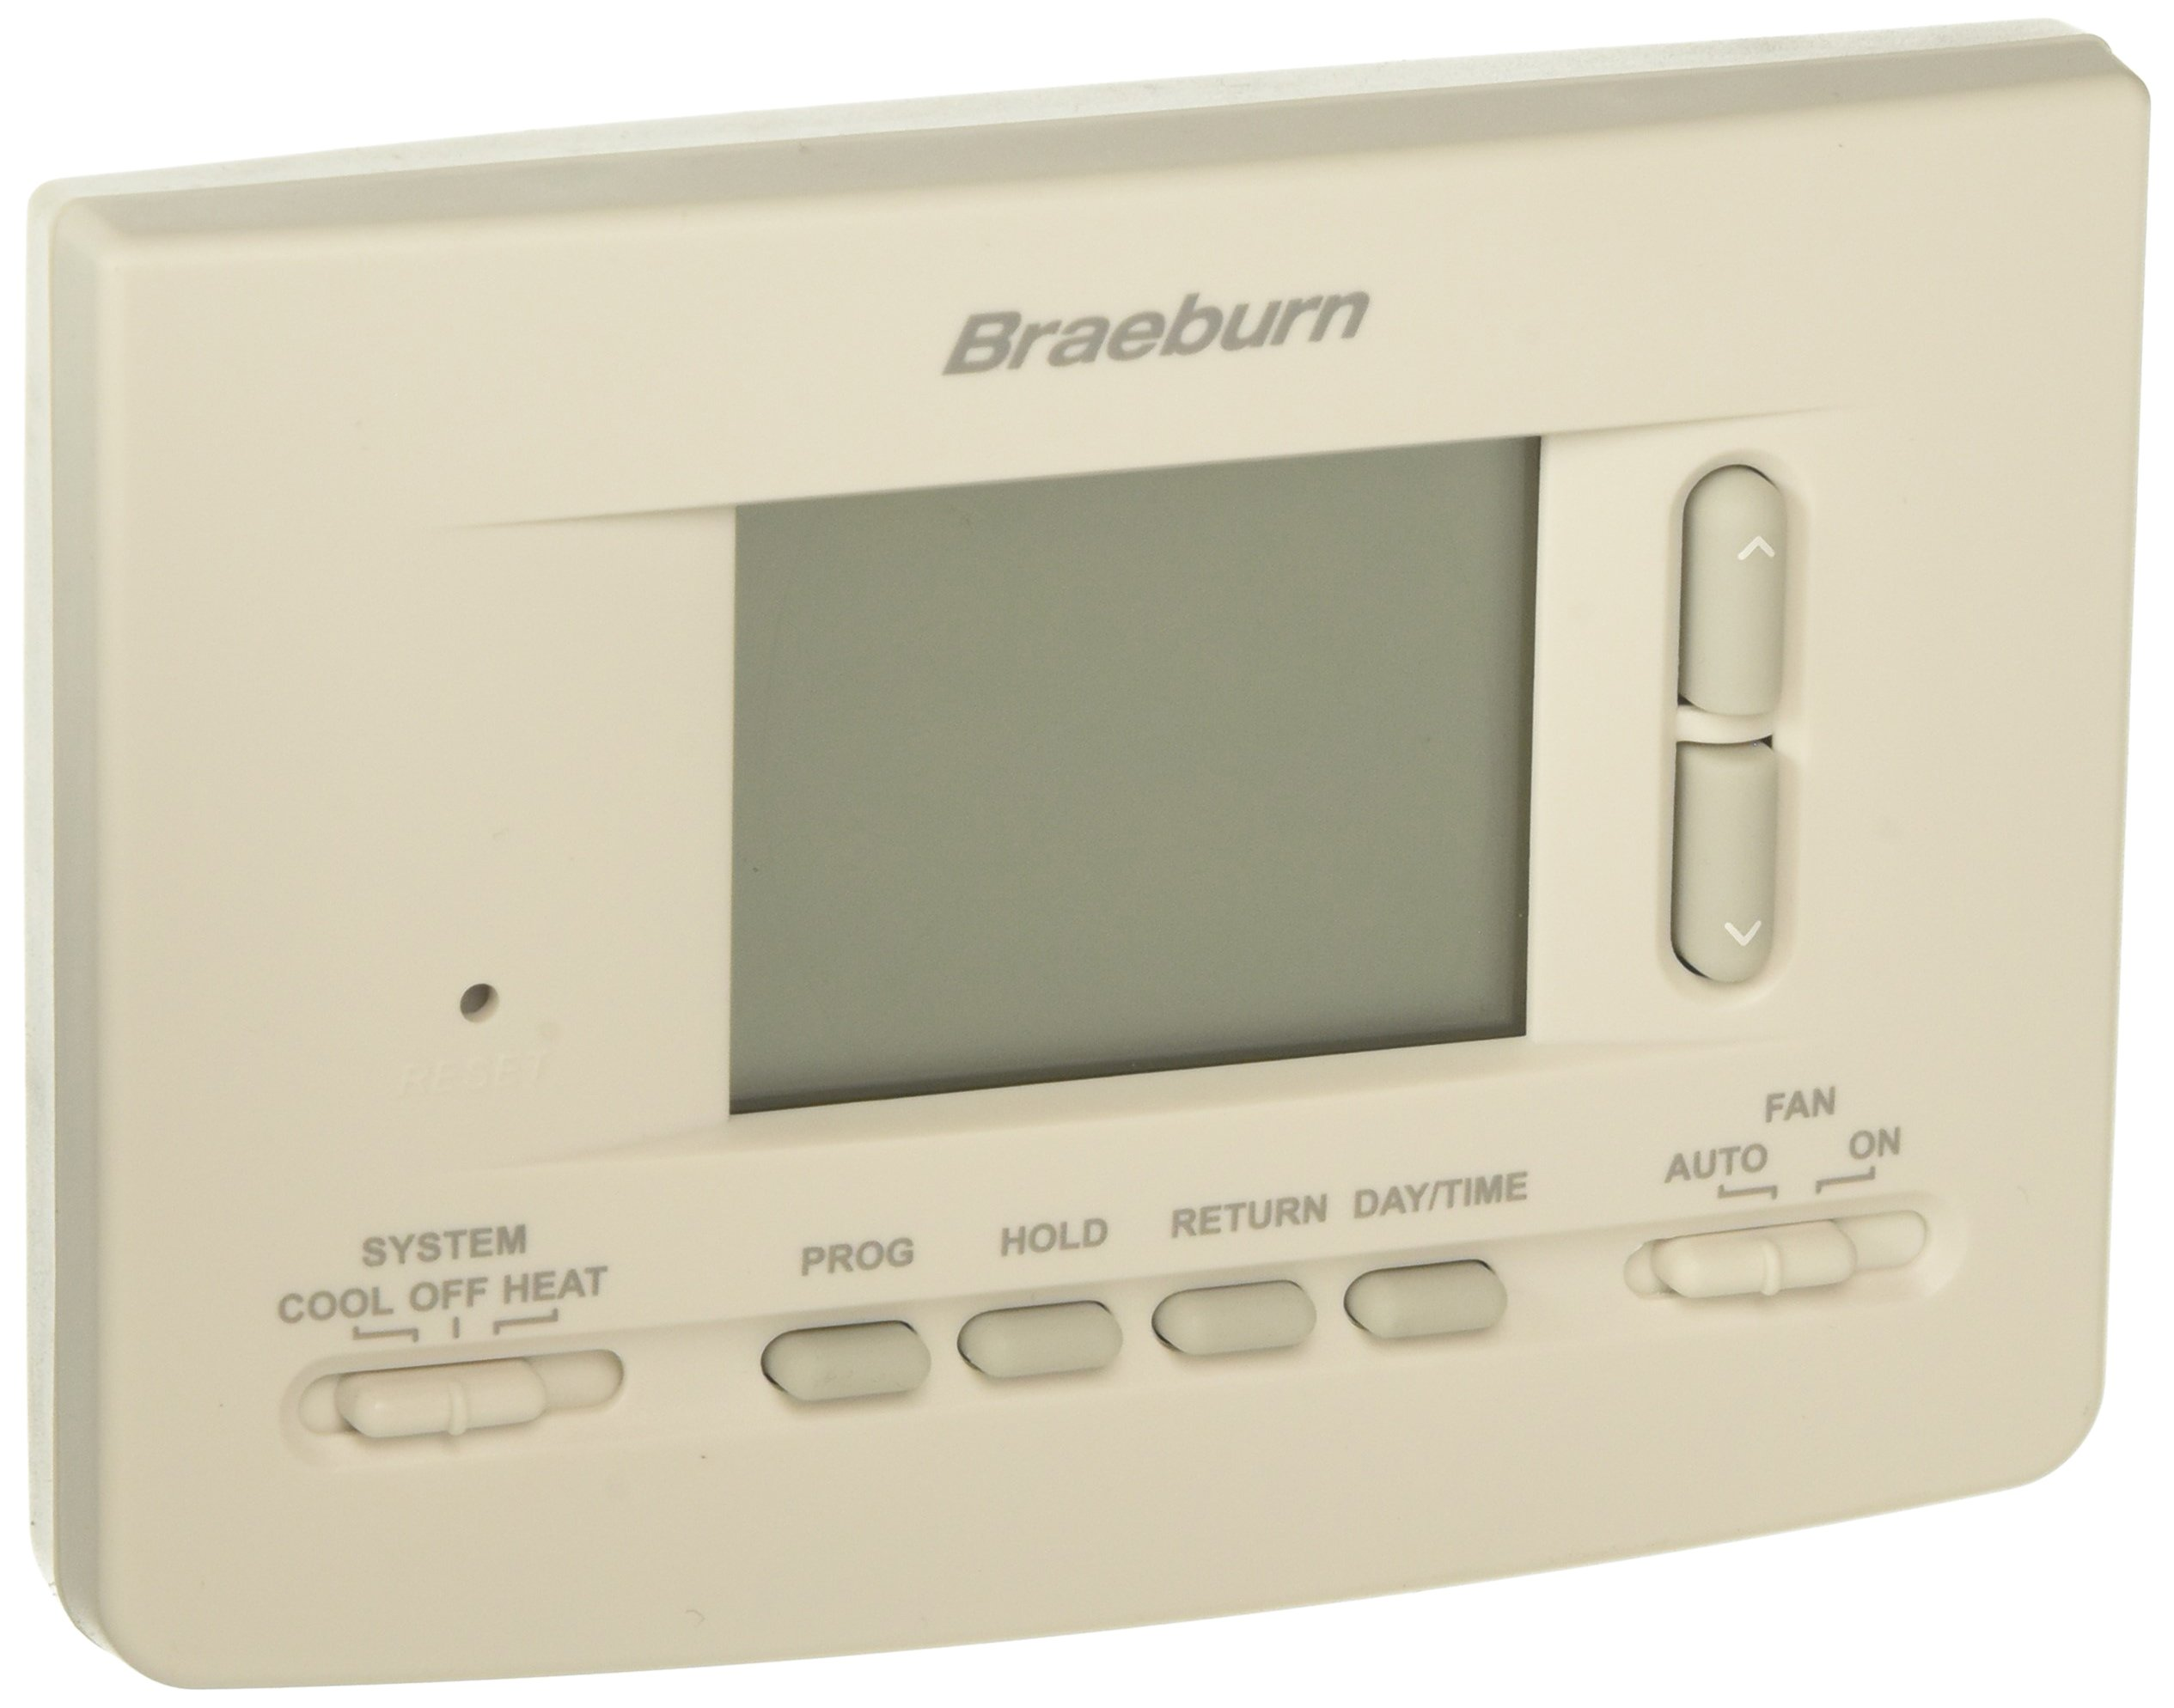 Braeburn 2020 Universal 7, 5-2 Day or Non-Programmable Thermostat